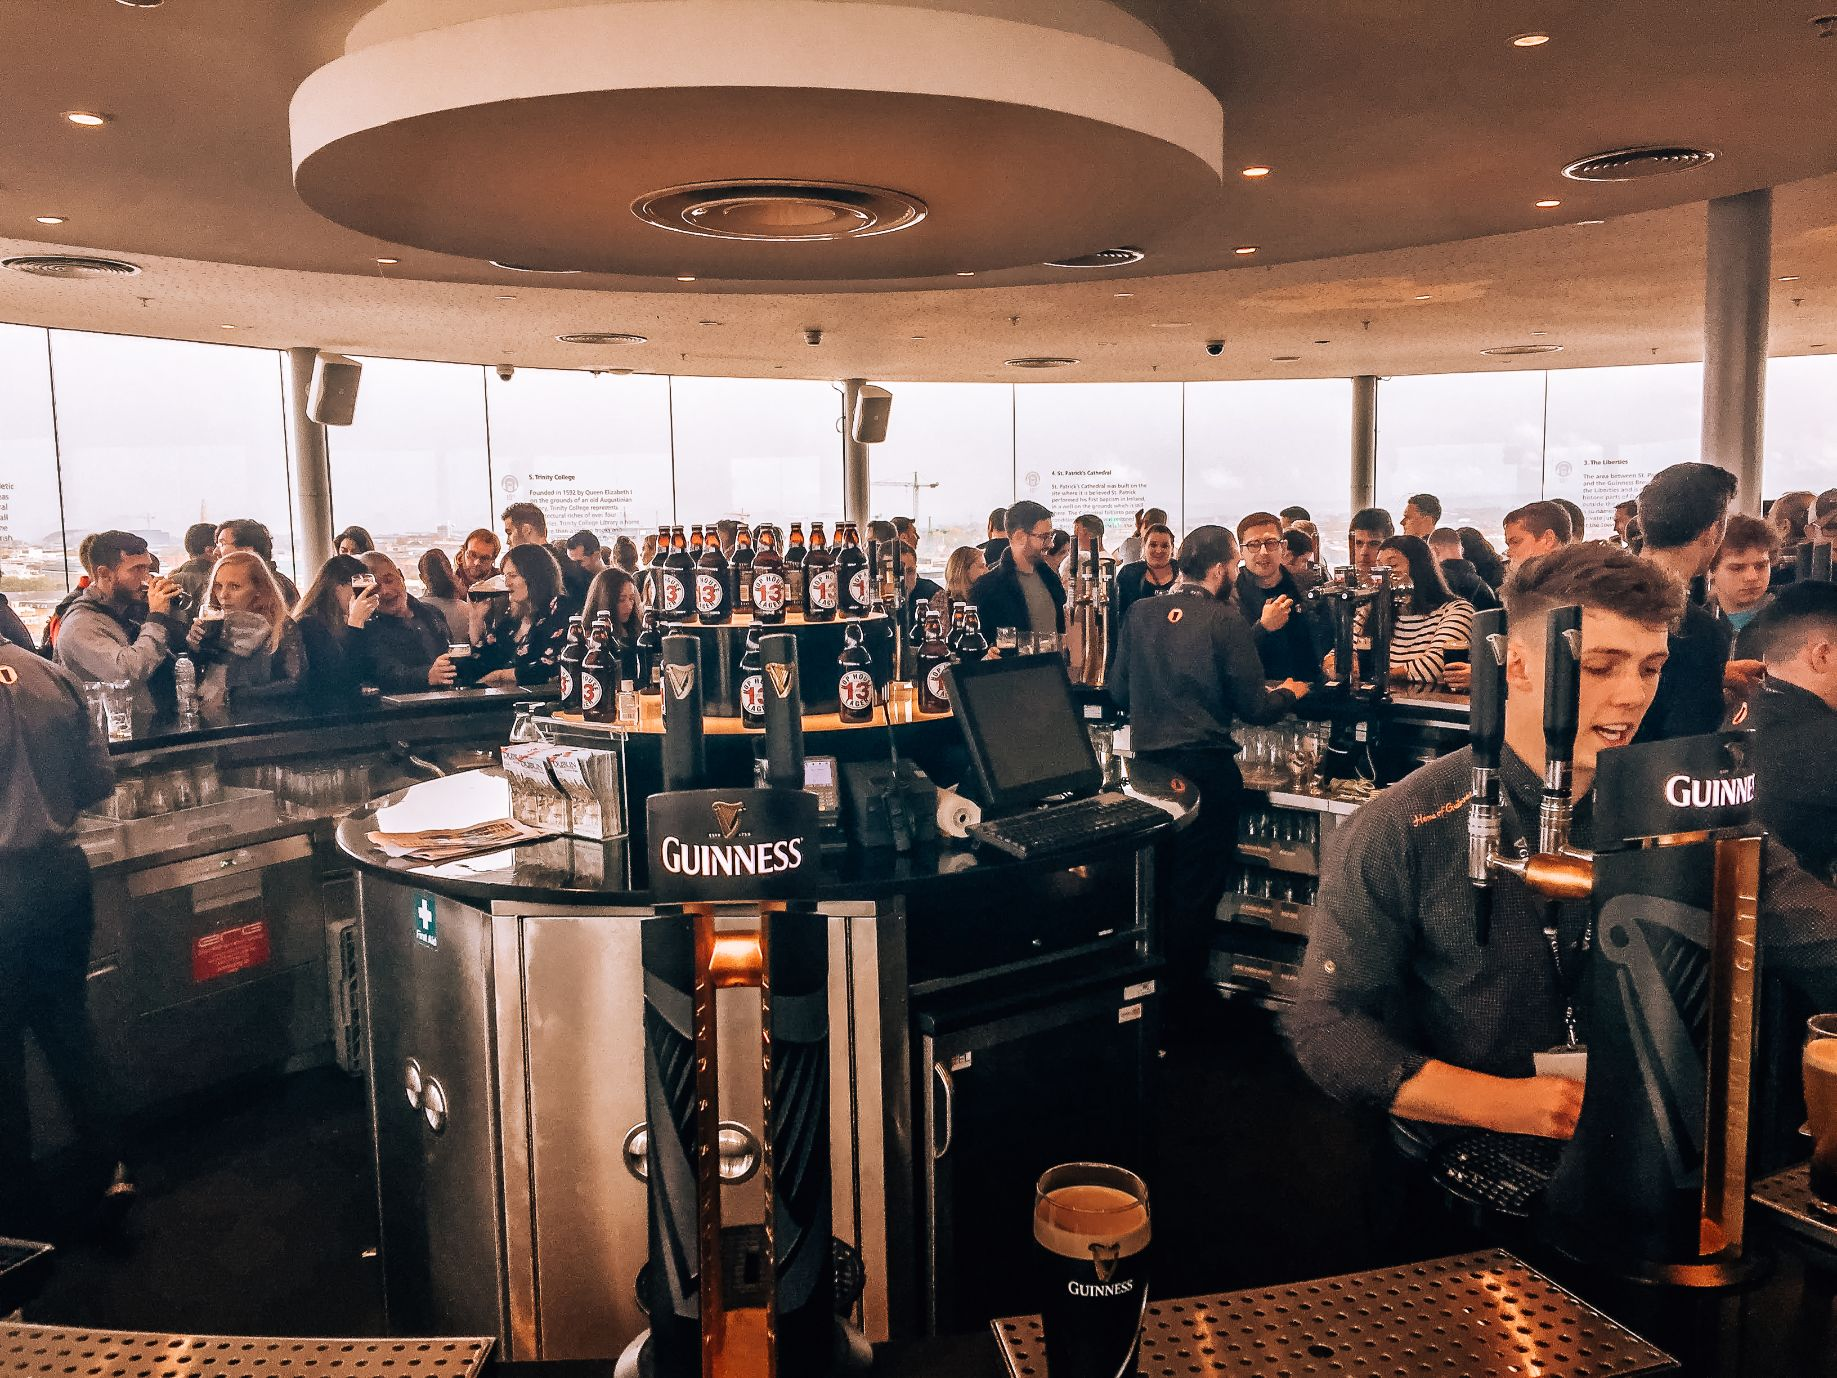 Gravity Bar located on the top floor of the Guinness Storehouse in Dublin Ireland